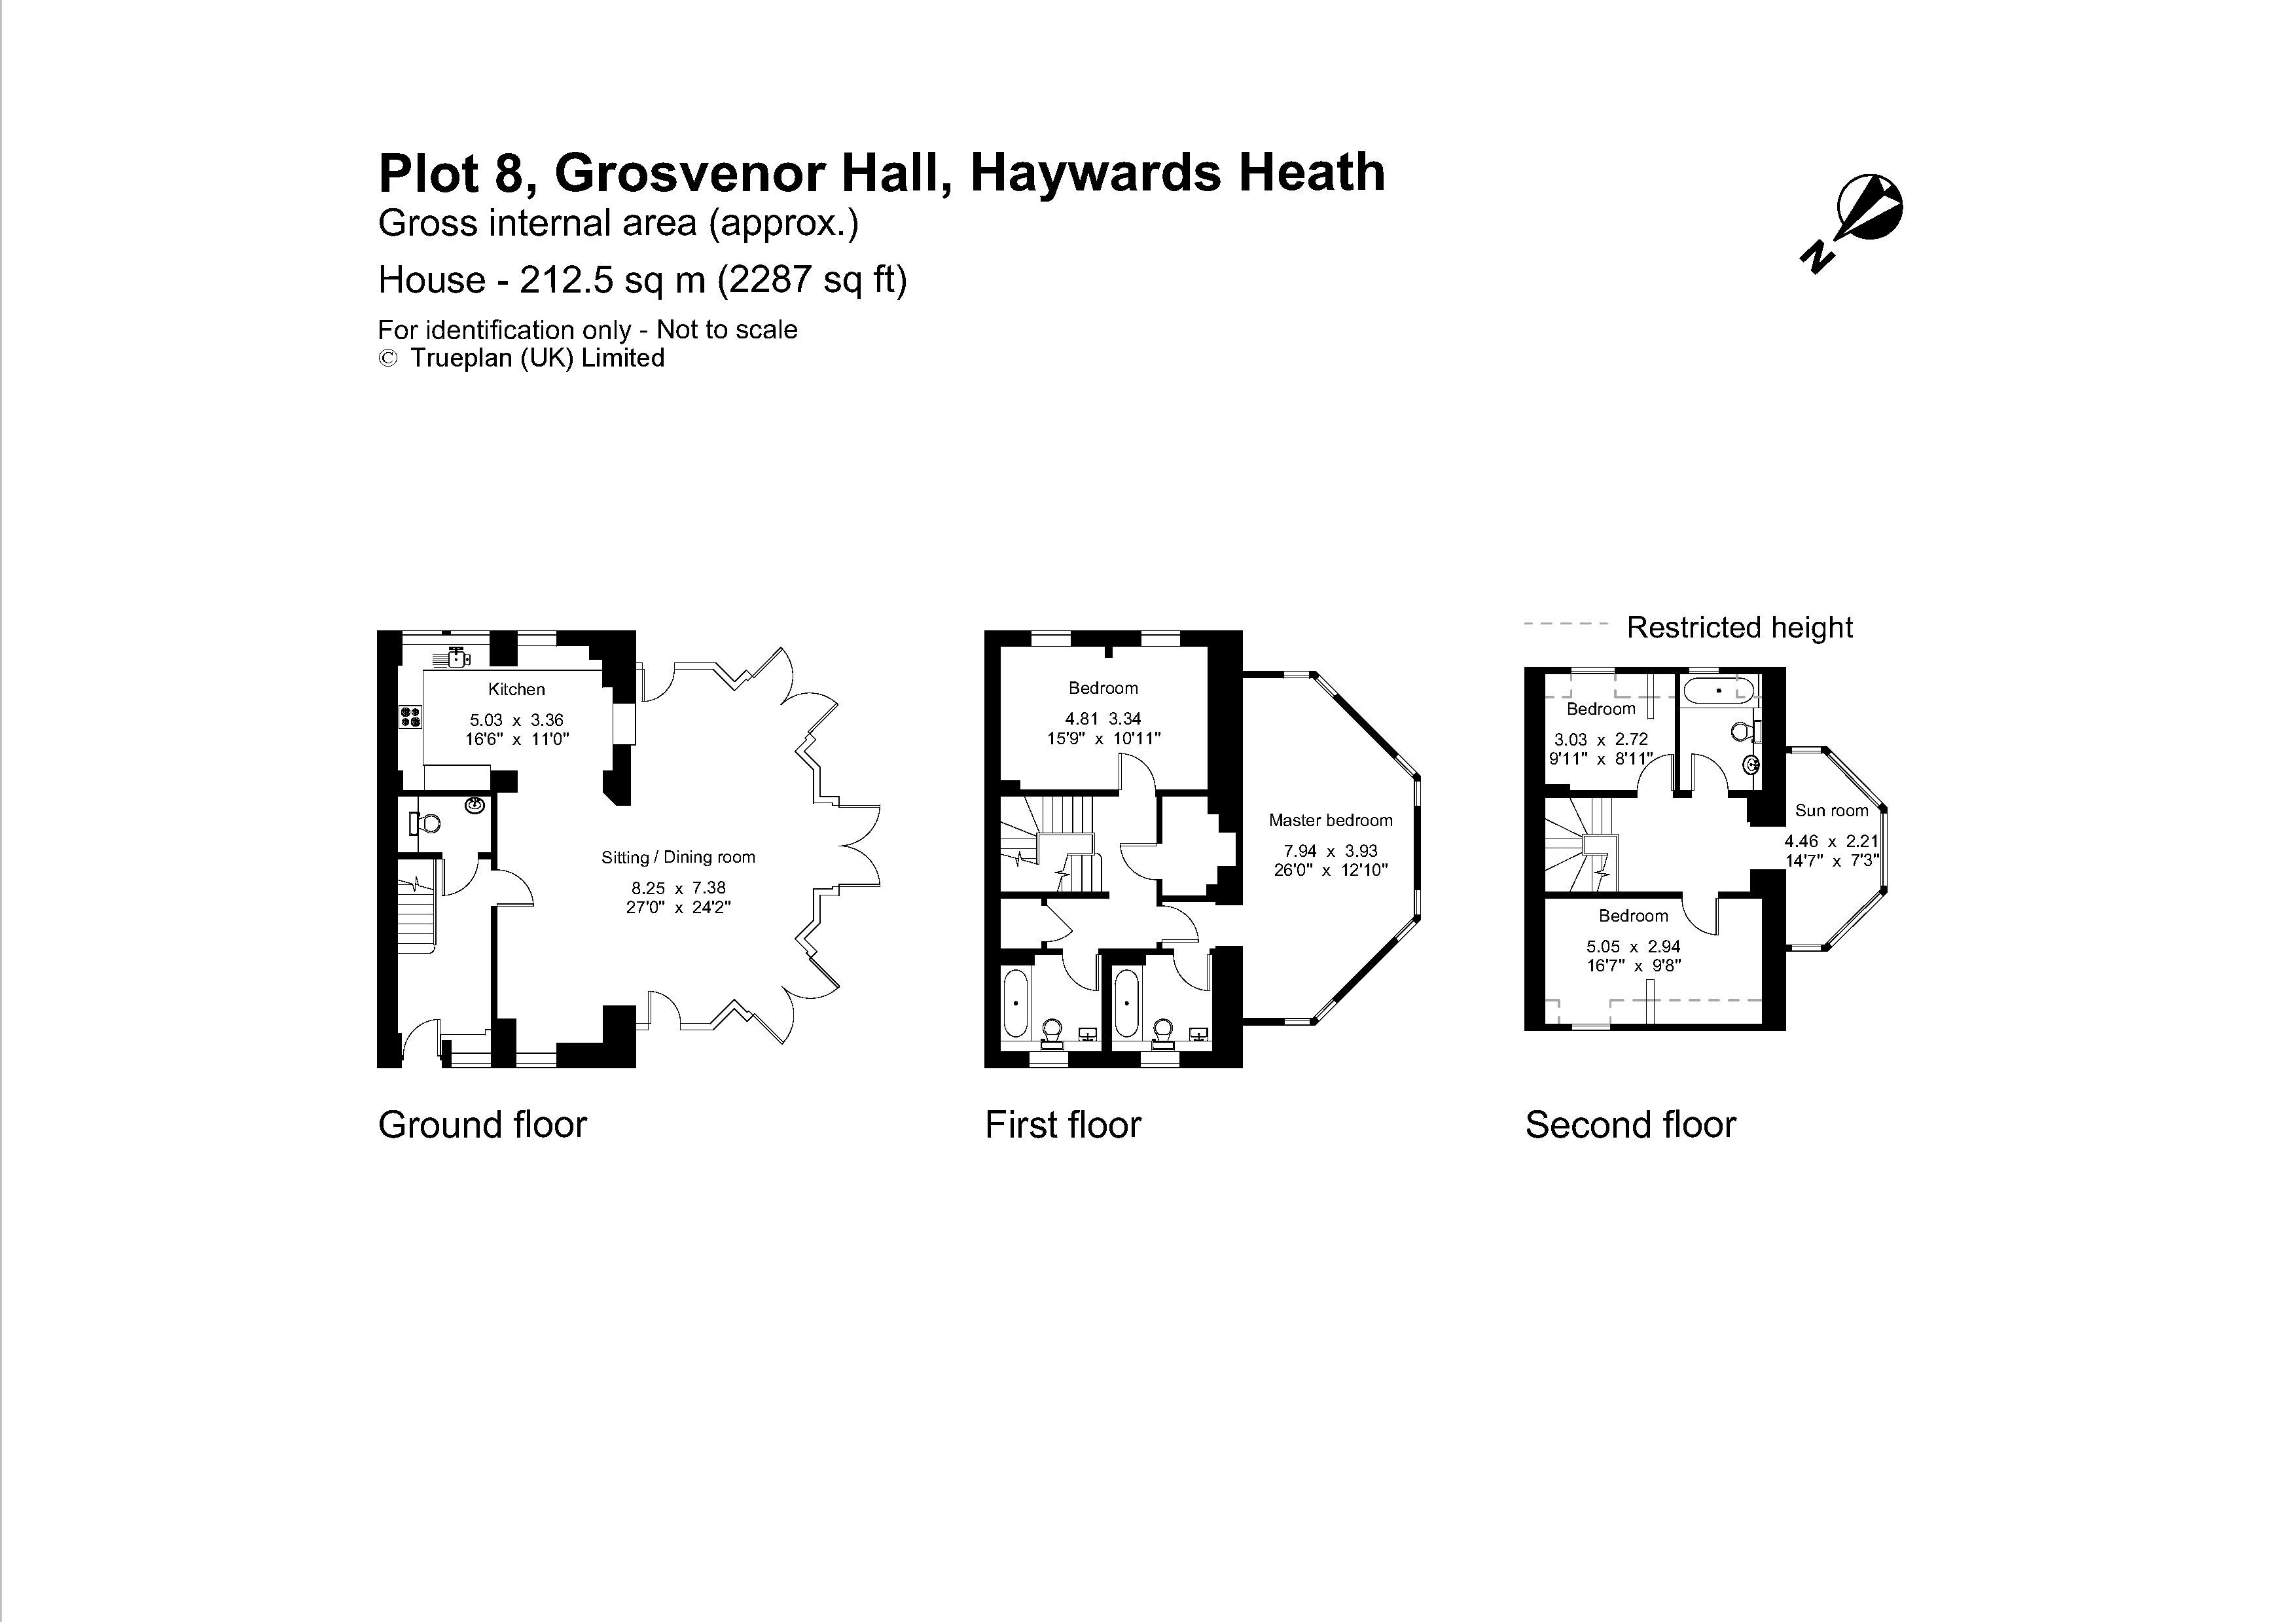 4 Bedroom Town House For Sale In Haywards Heath Average Cost Of Rewiring A Bed Floorplan